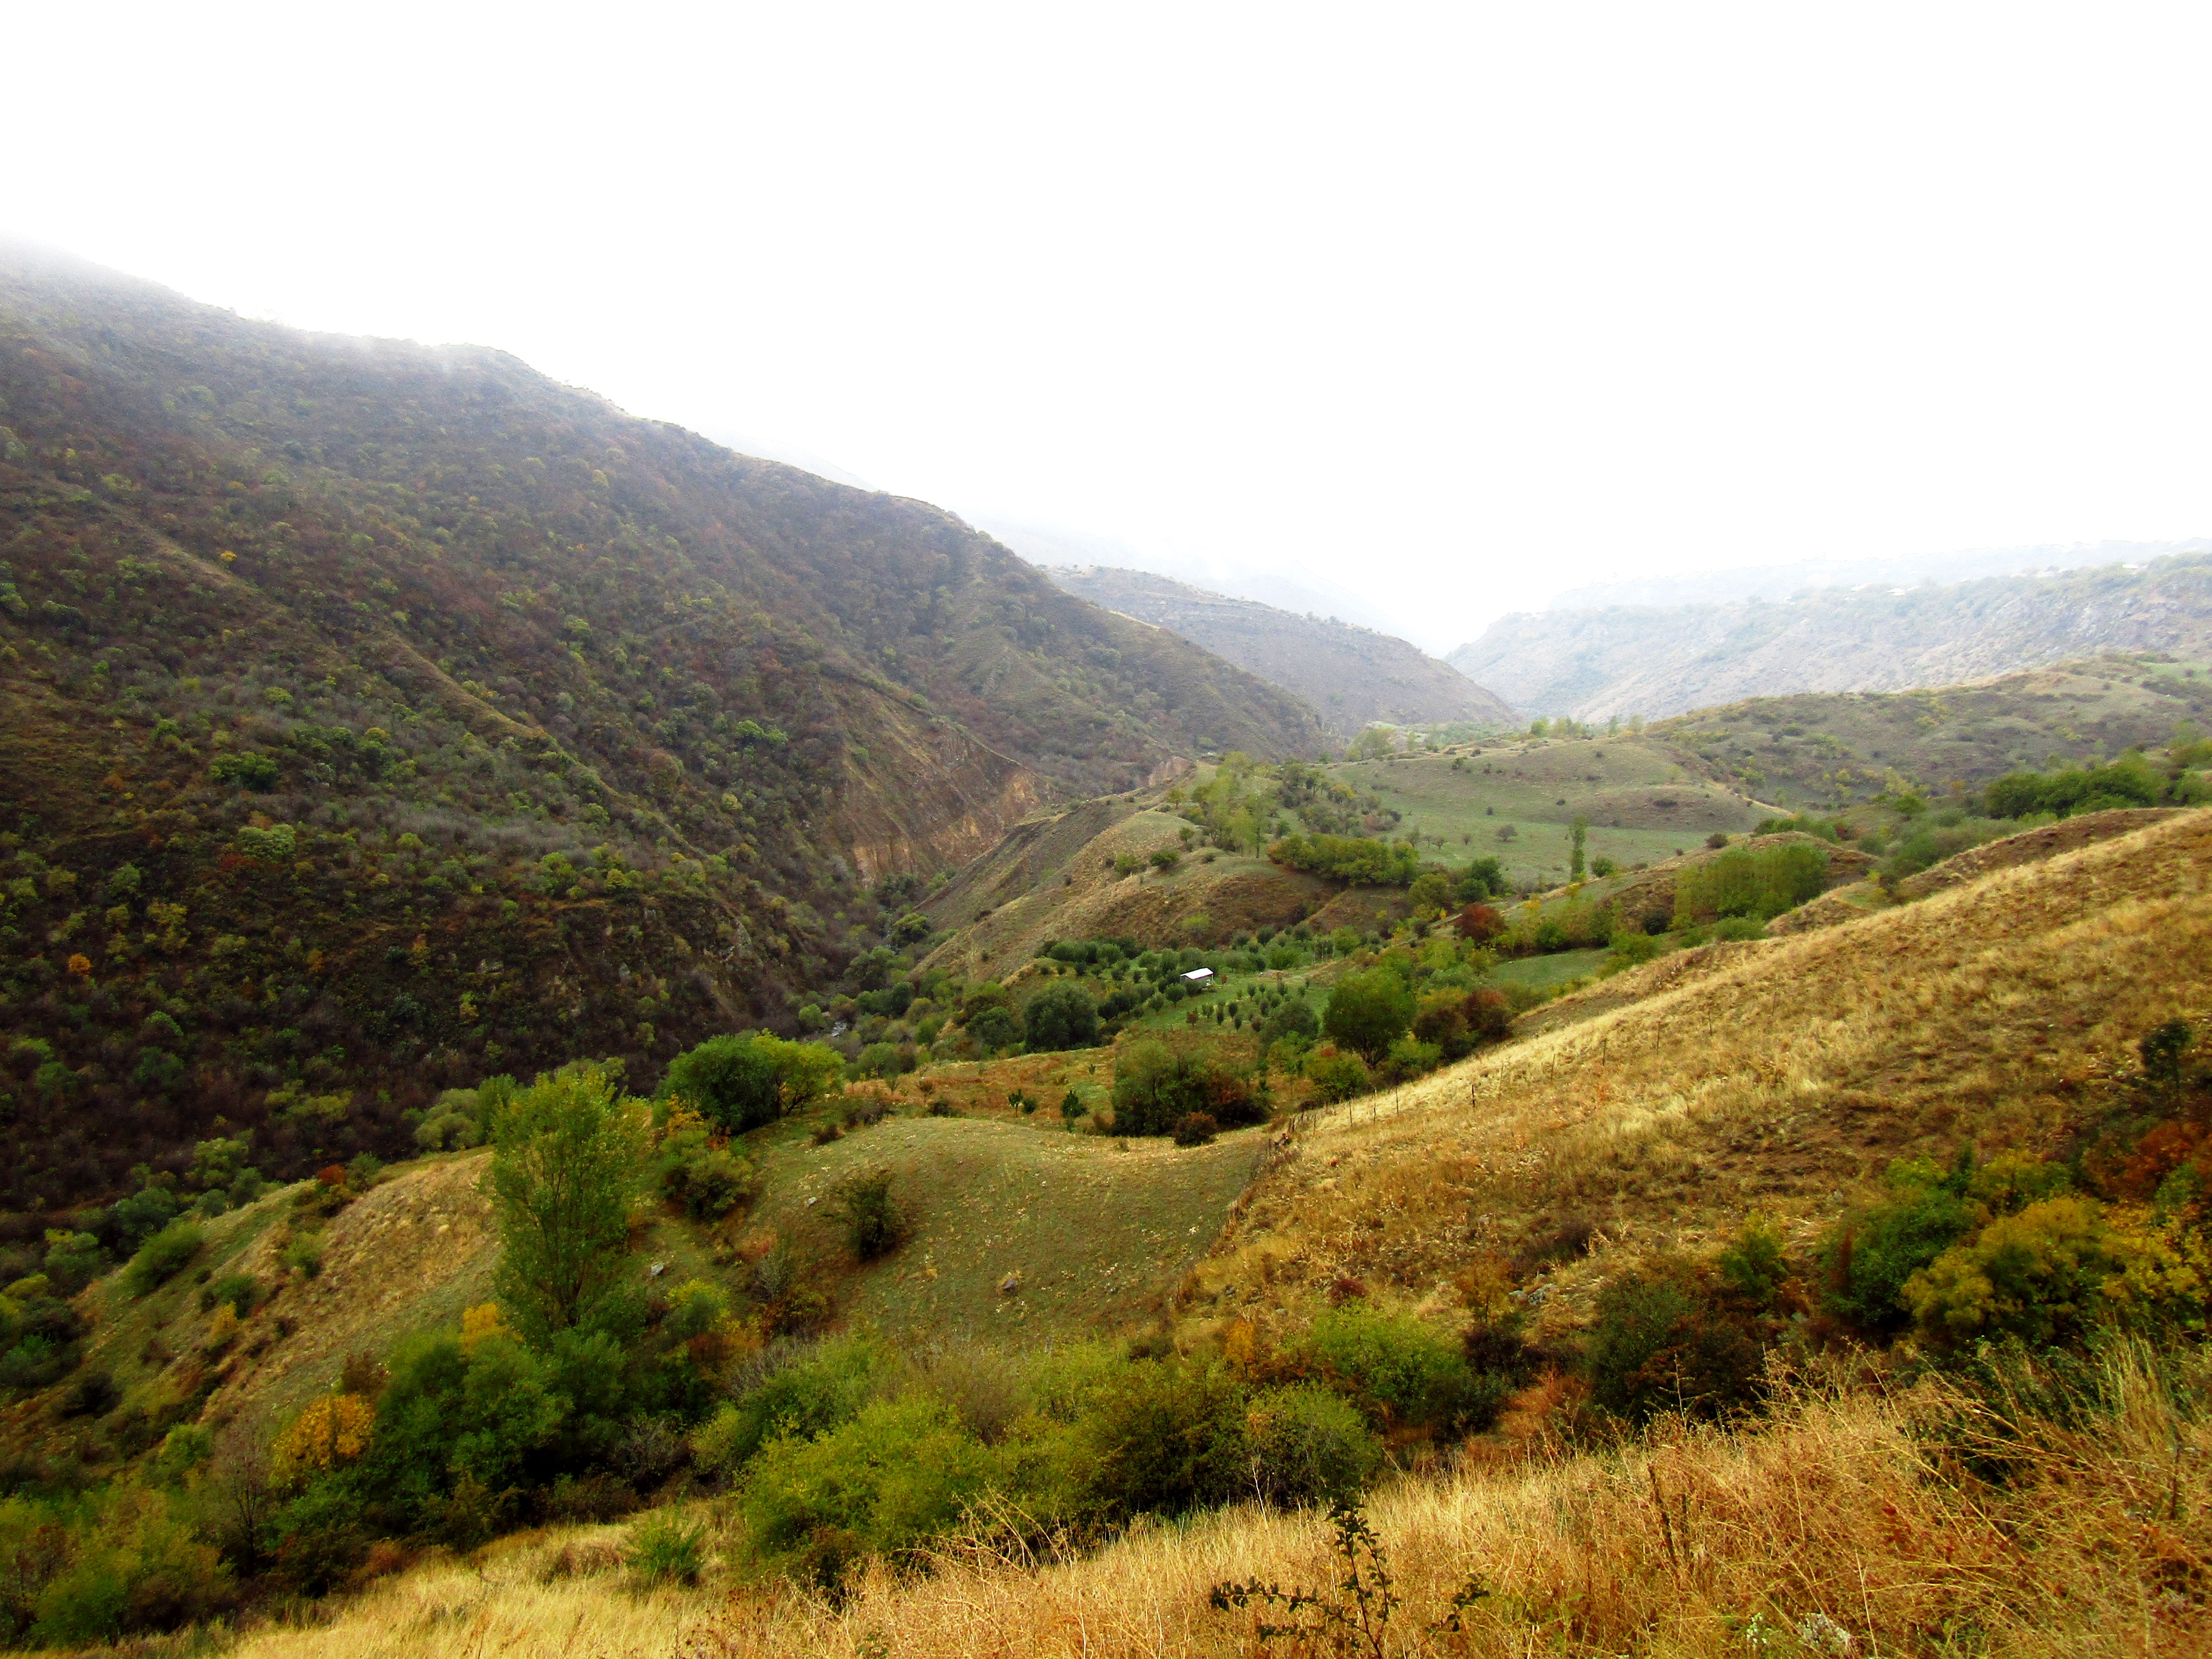 The landscape on the way to Geghard Monastery